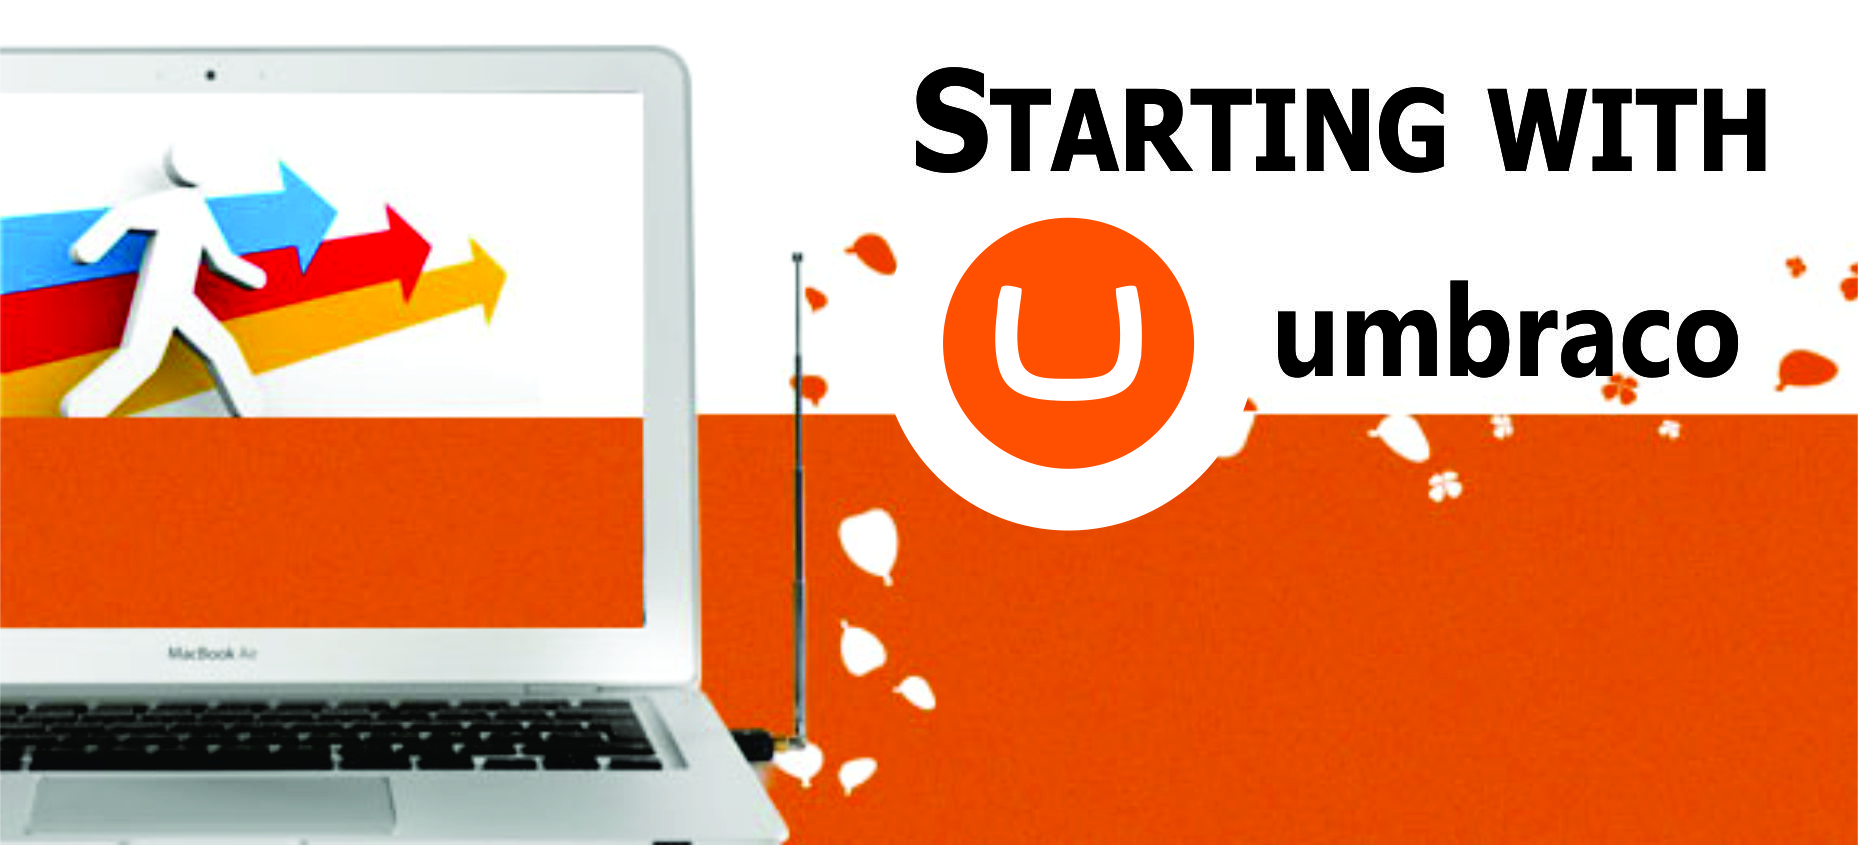 Starting with Umbraco